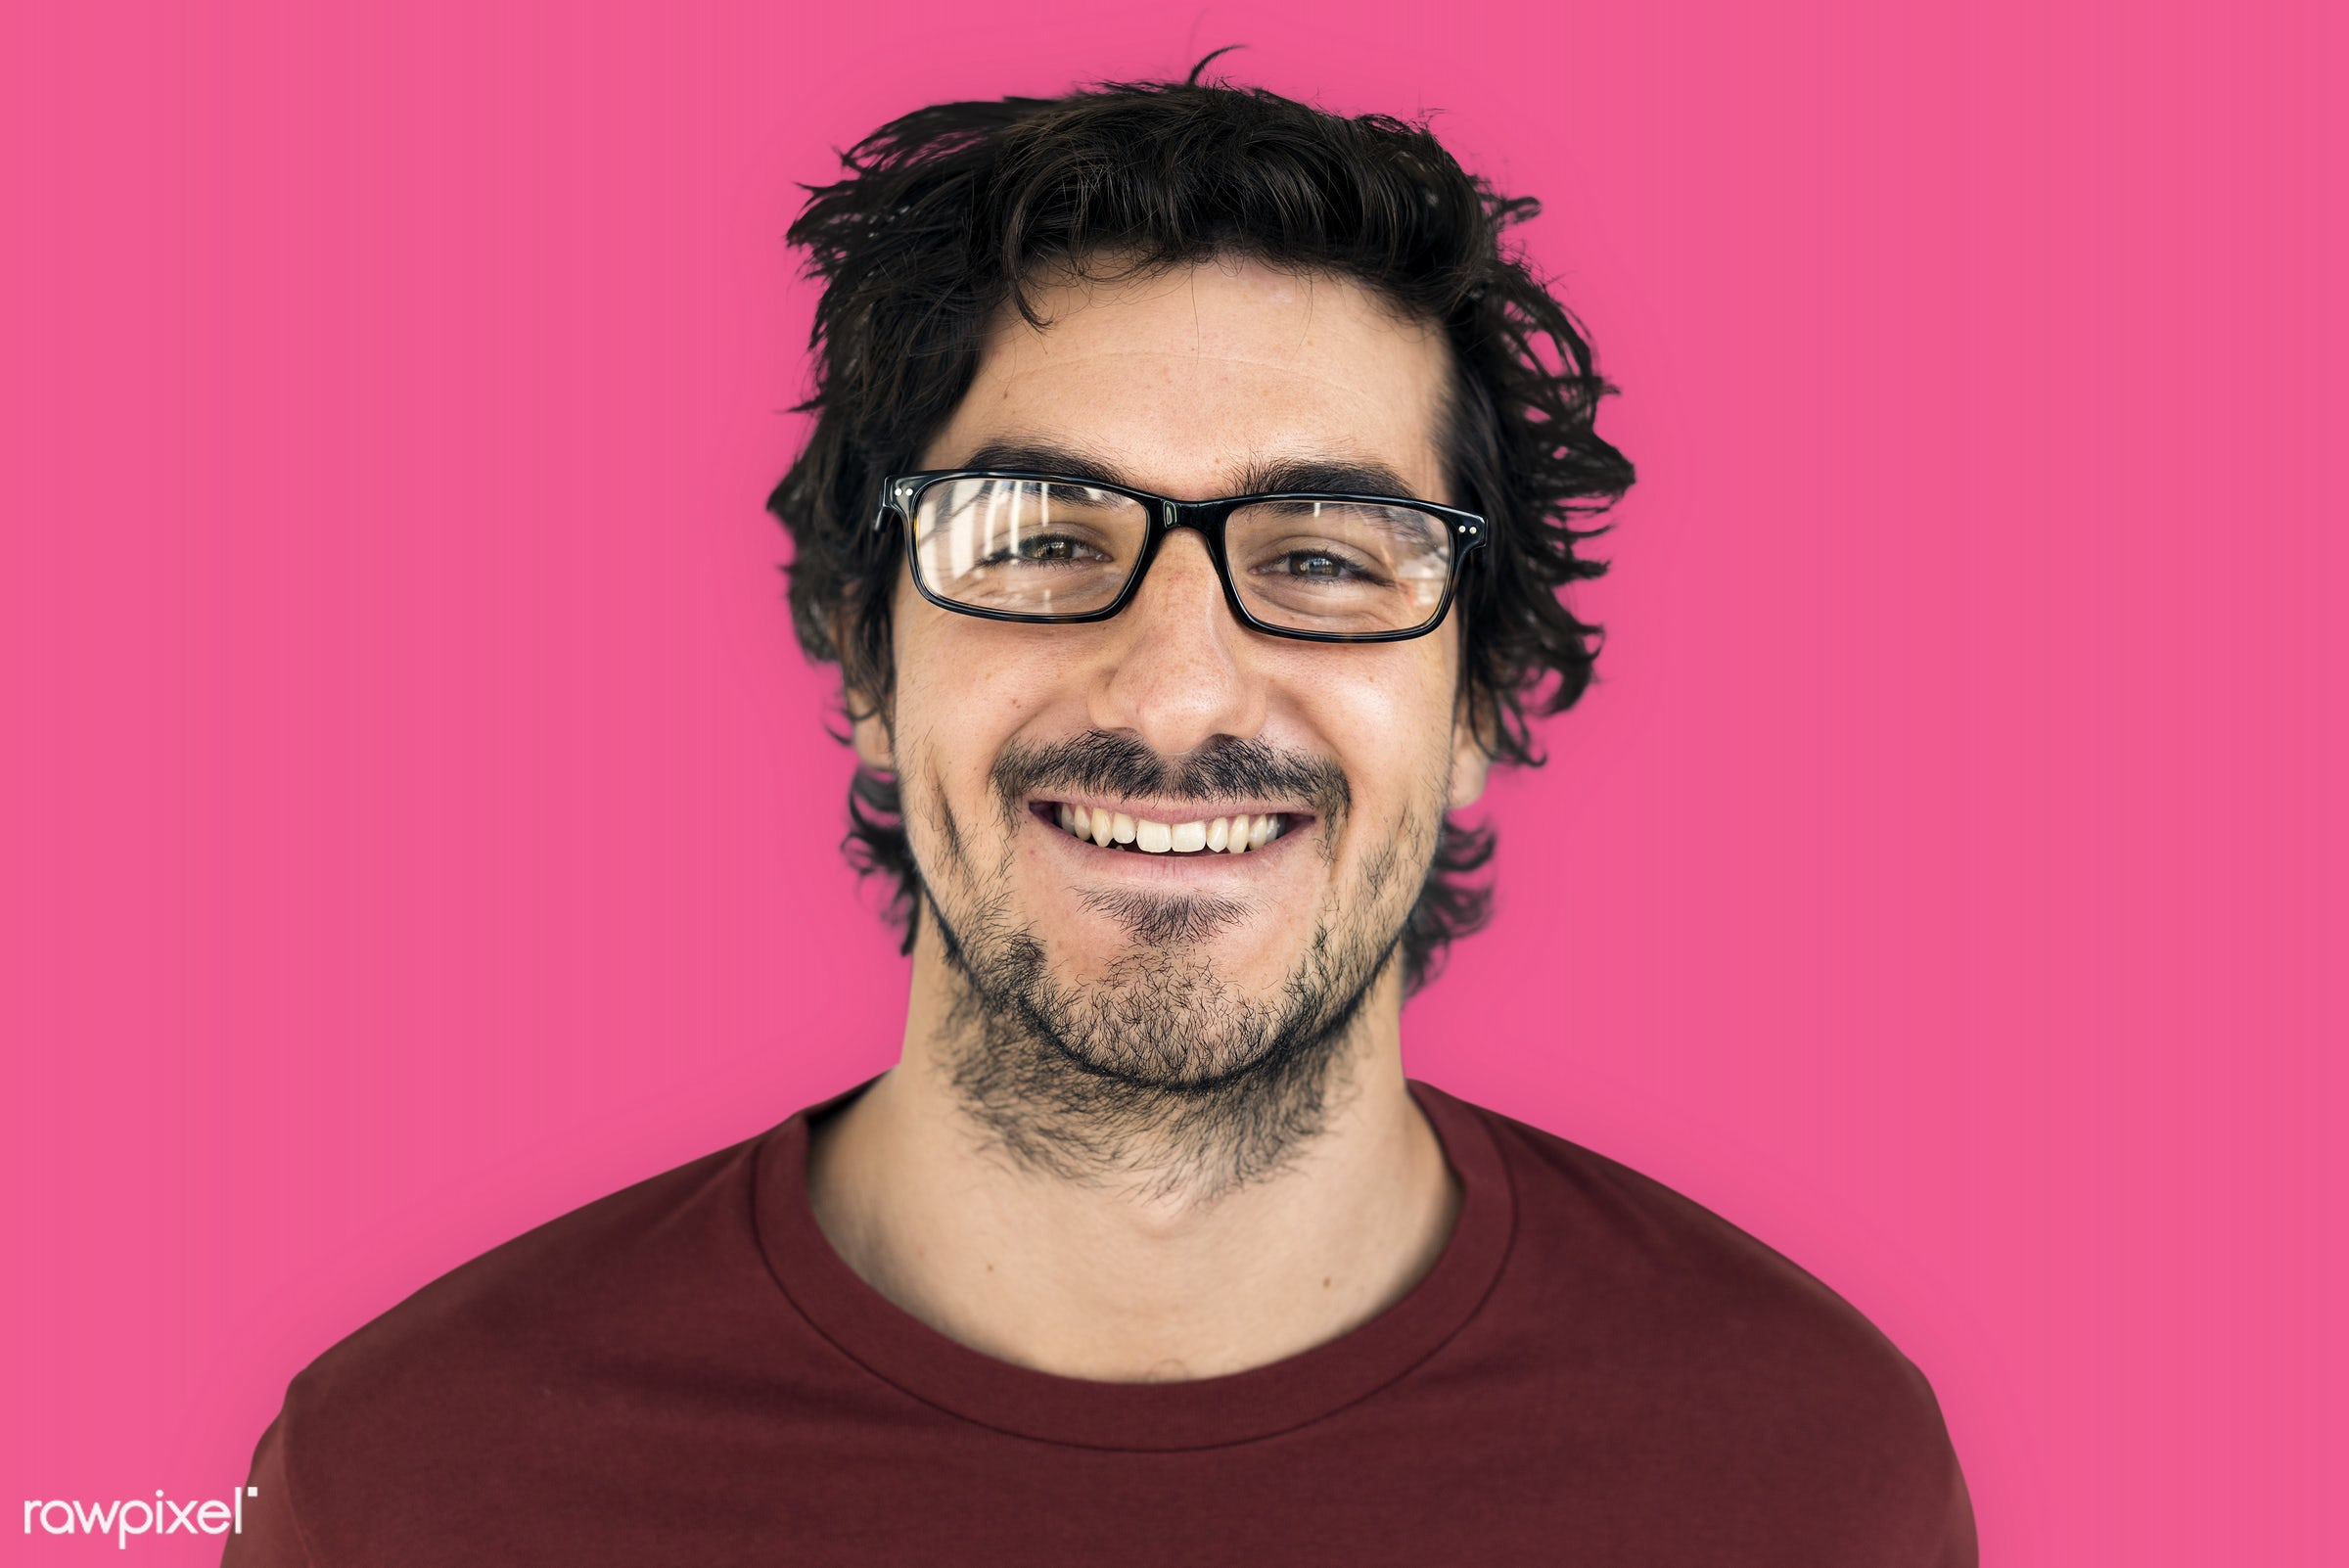 studio, intelligent, expression, person, glasses, vibrant, people, caucasian, looking, style, happy, casual, pink, man,...